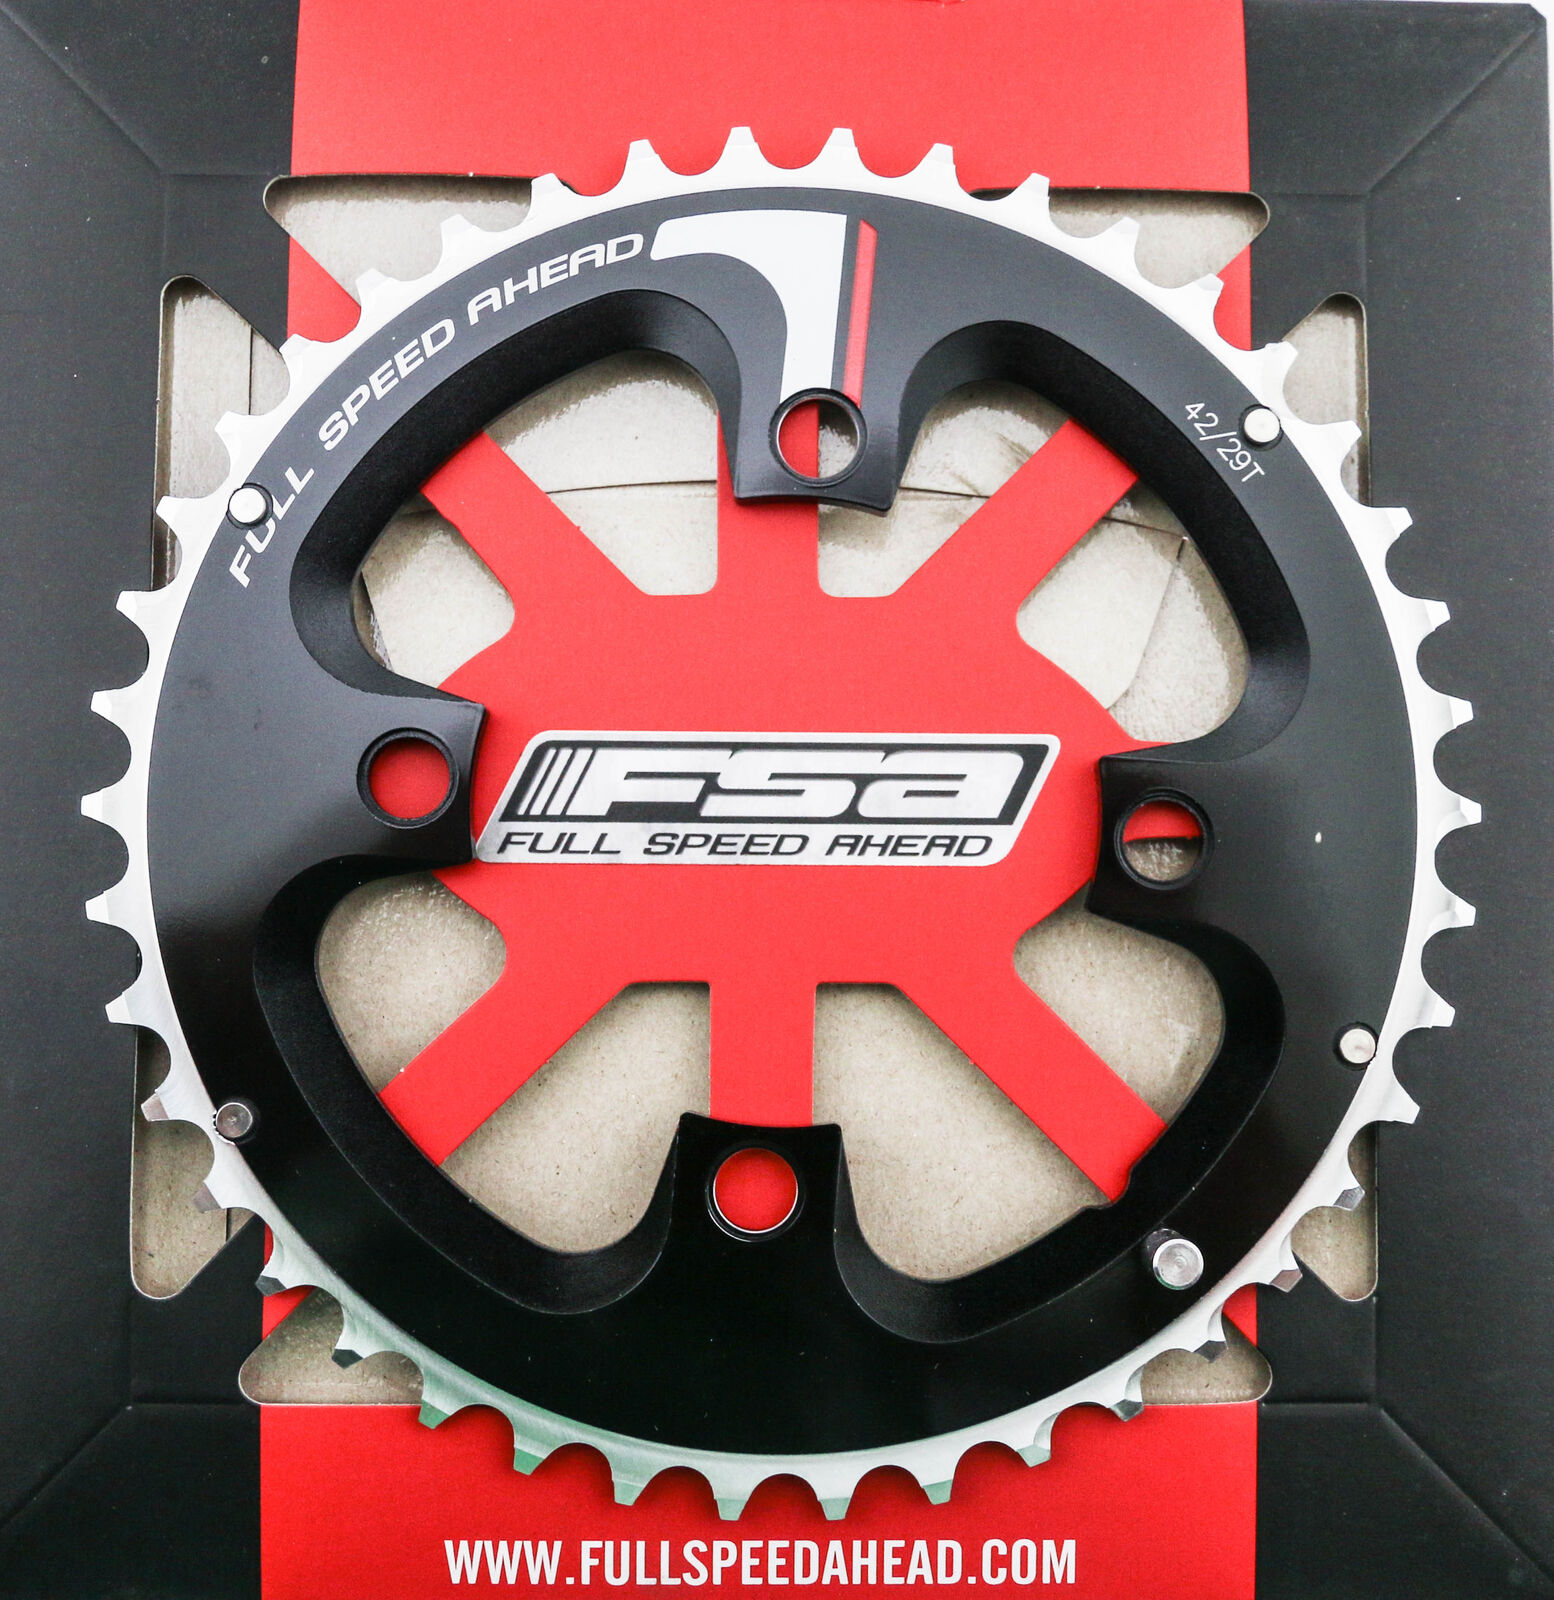 FSA Pro ATB 9sp 104x44T X-10 Alloy Black Chainring New MTB Mountain Bike OEM